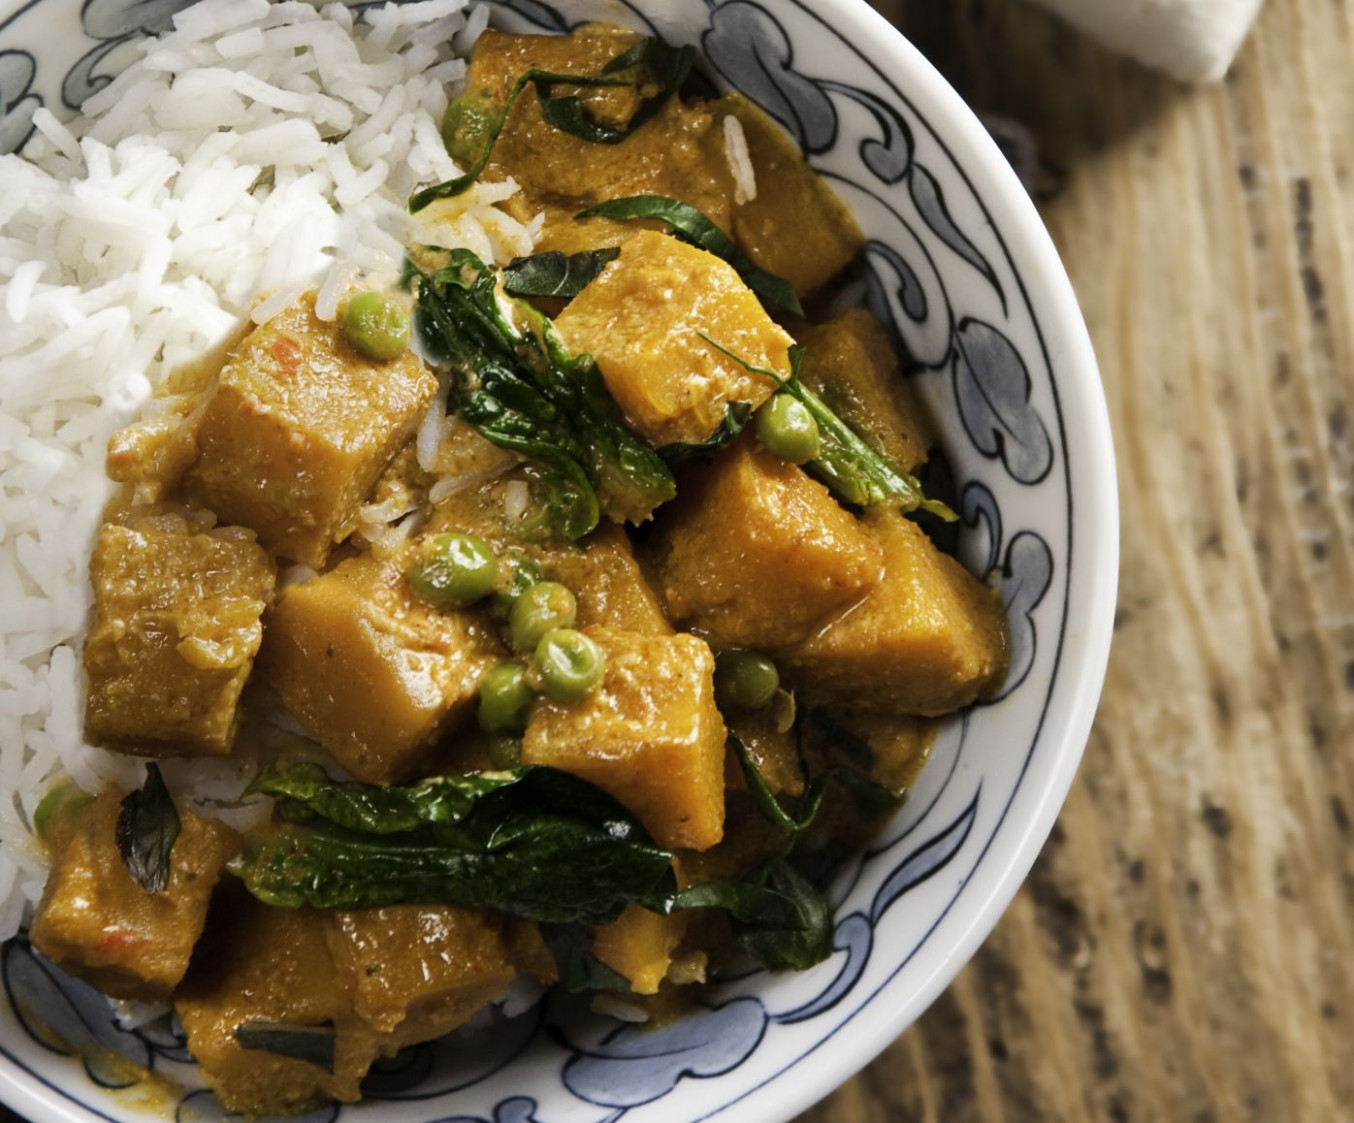 Vegan Gluten Free Red Curry Tofu With Vegetables - Recipe Vegetarian Red Curry